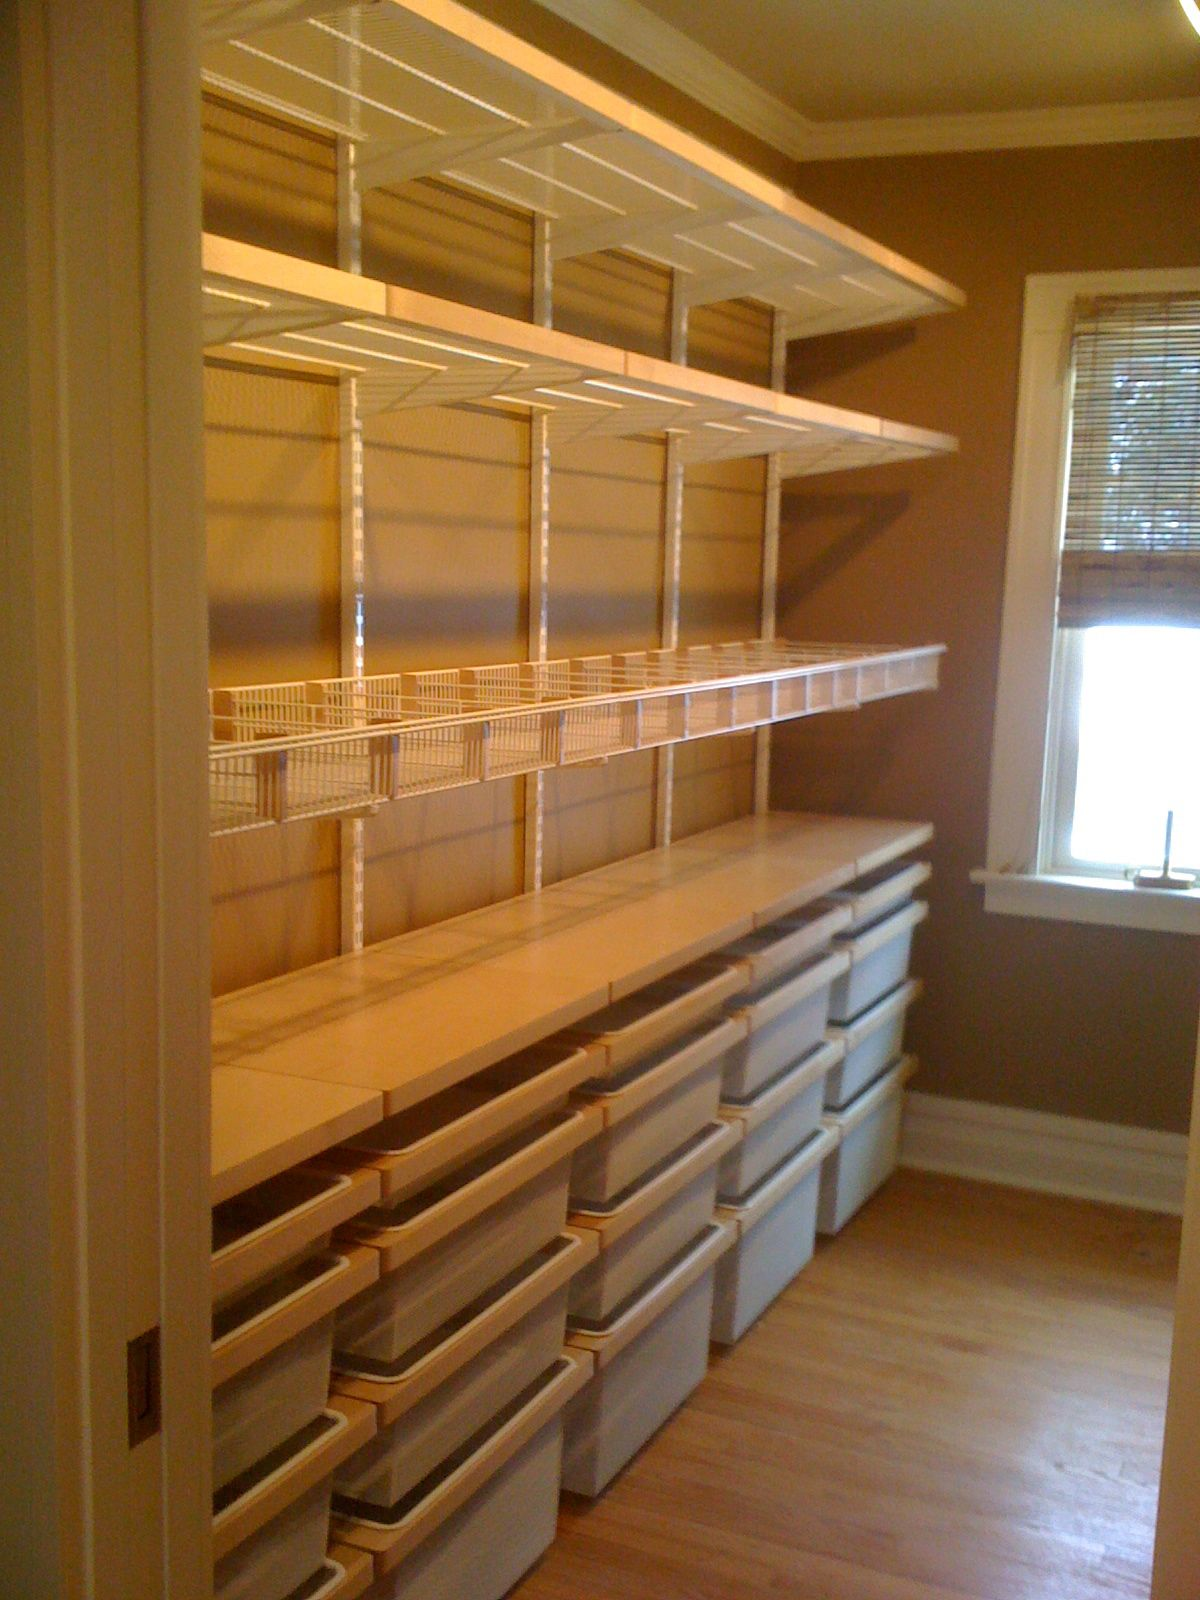 Elfa Storage System D Ikea Vs Elfa Closet System Reviews Elfa Closet Systems